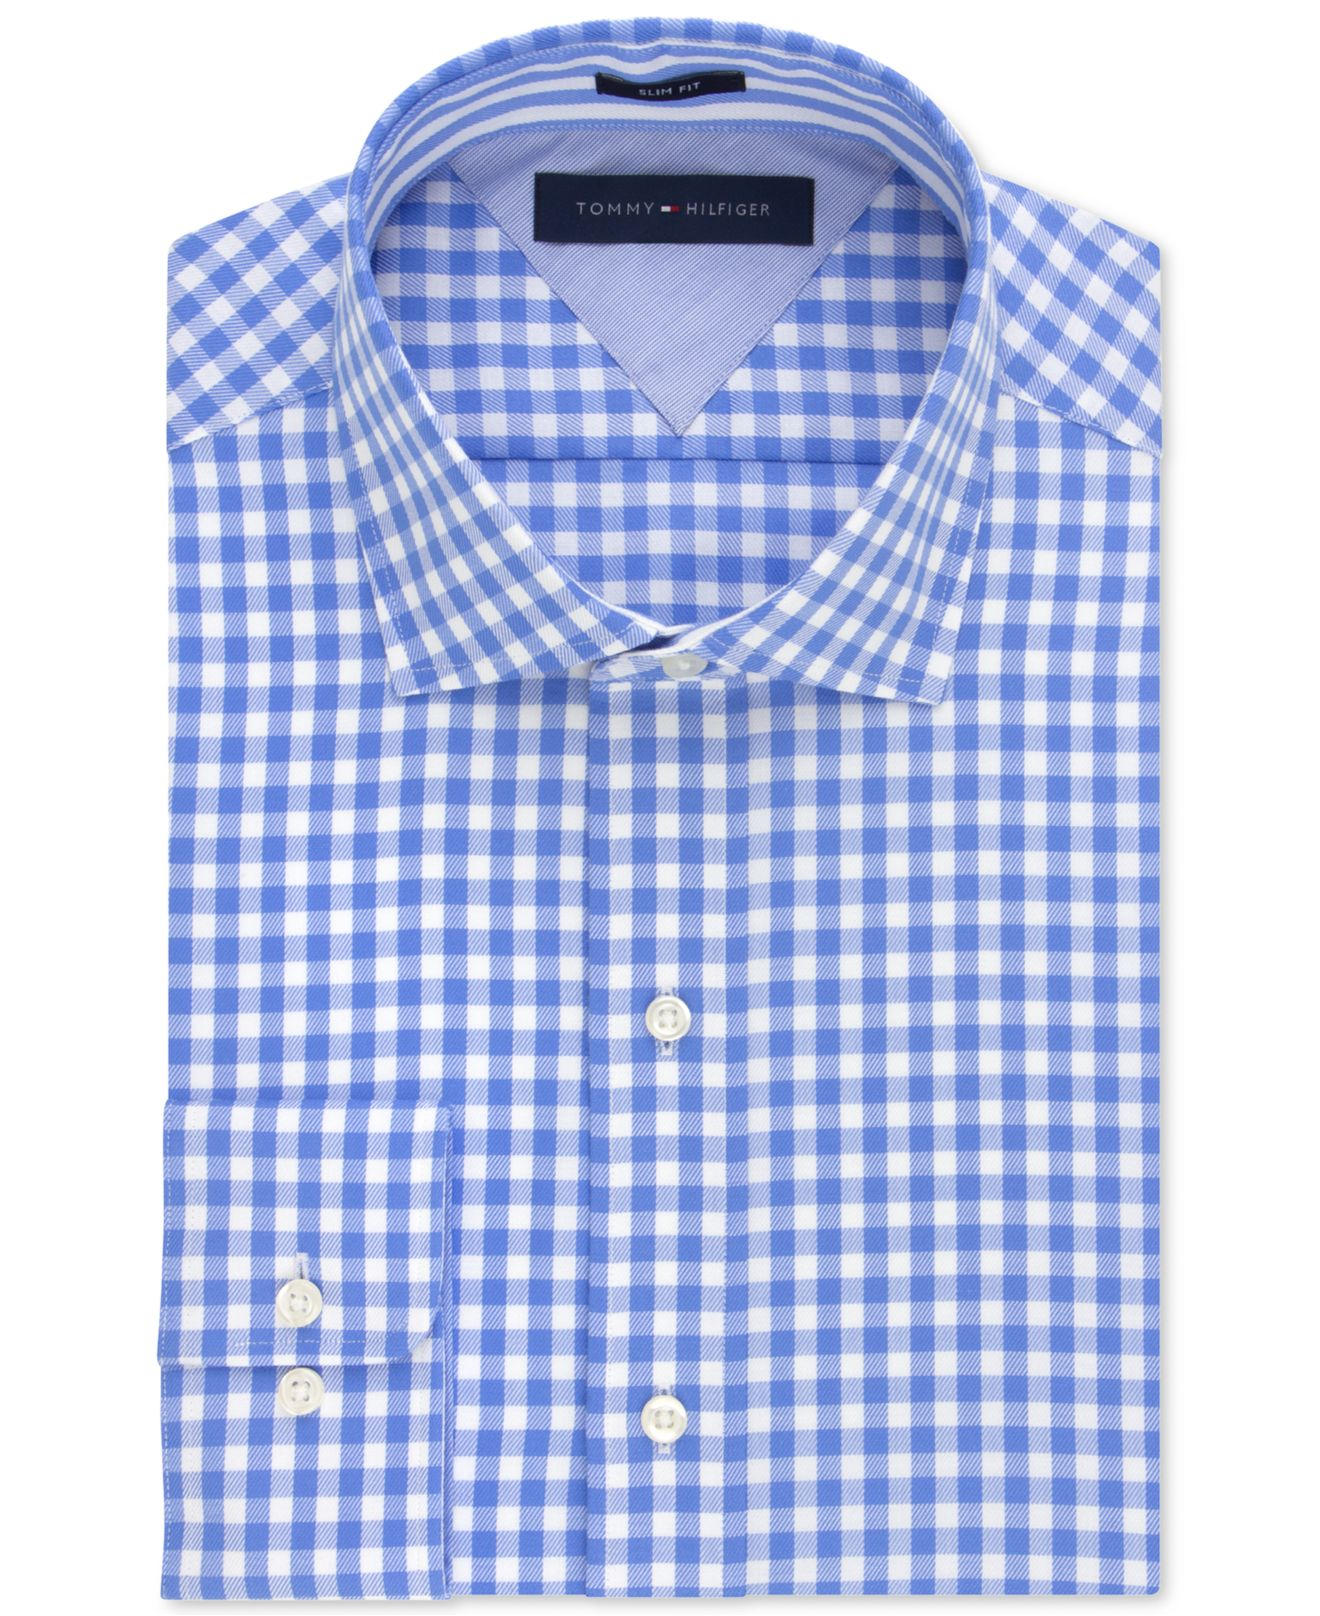 d3c03ec5e089 Lyst - Tommy Hilfiger Easy Care Slim-fit Large Blue Gingham Dress ...